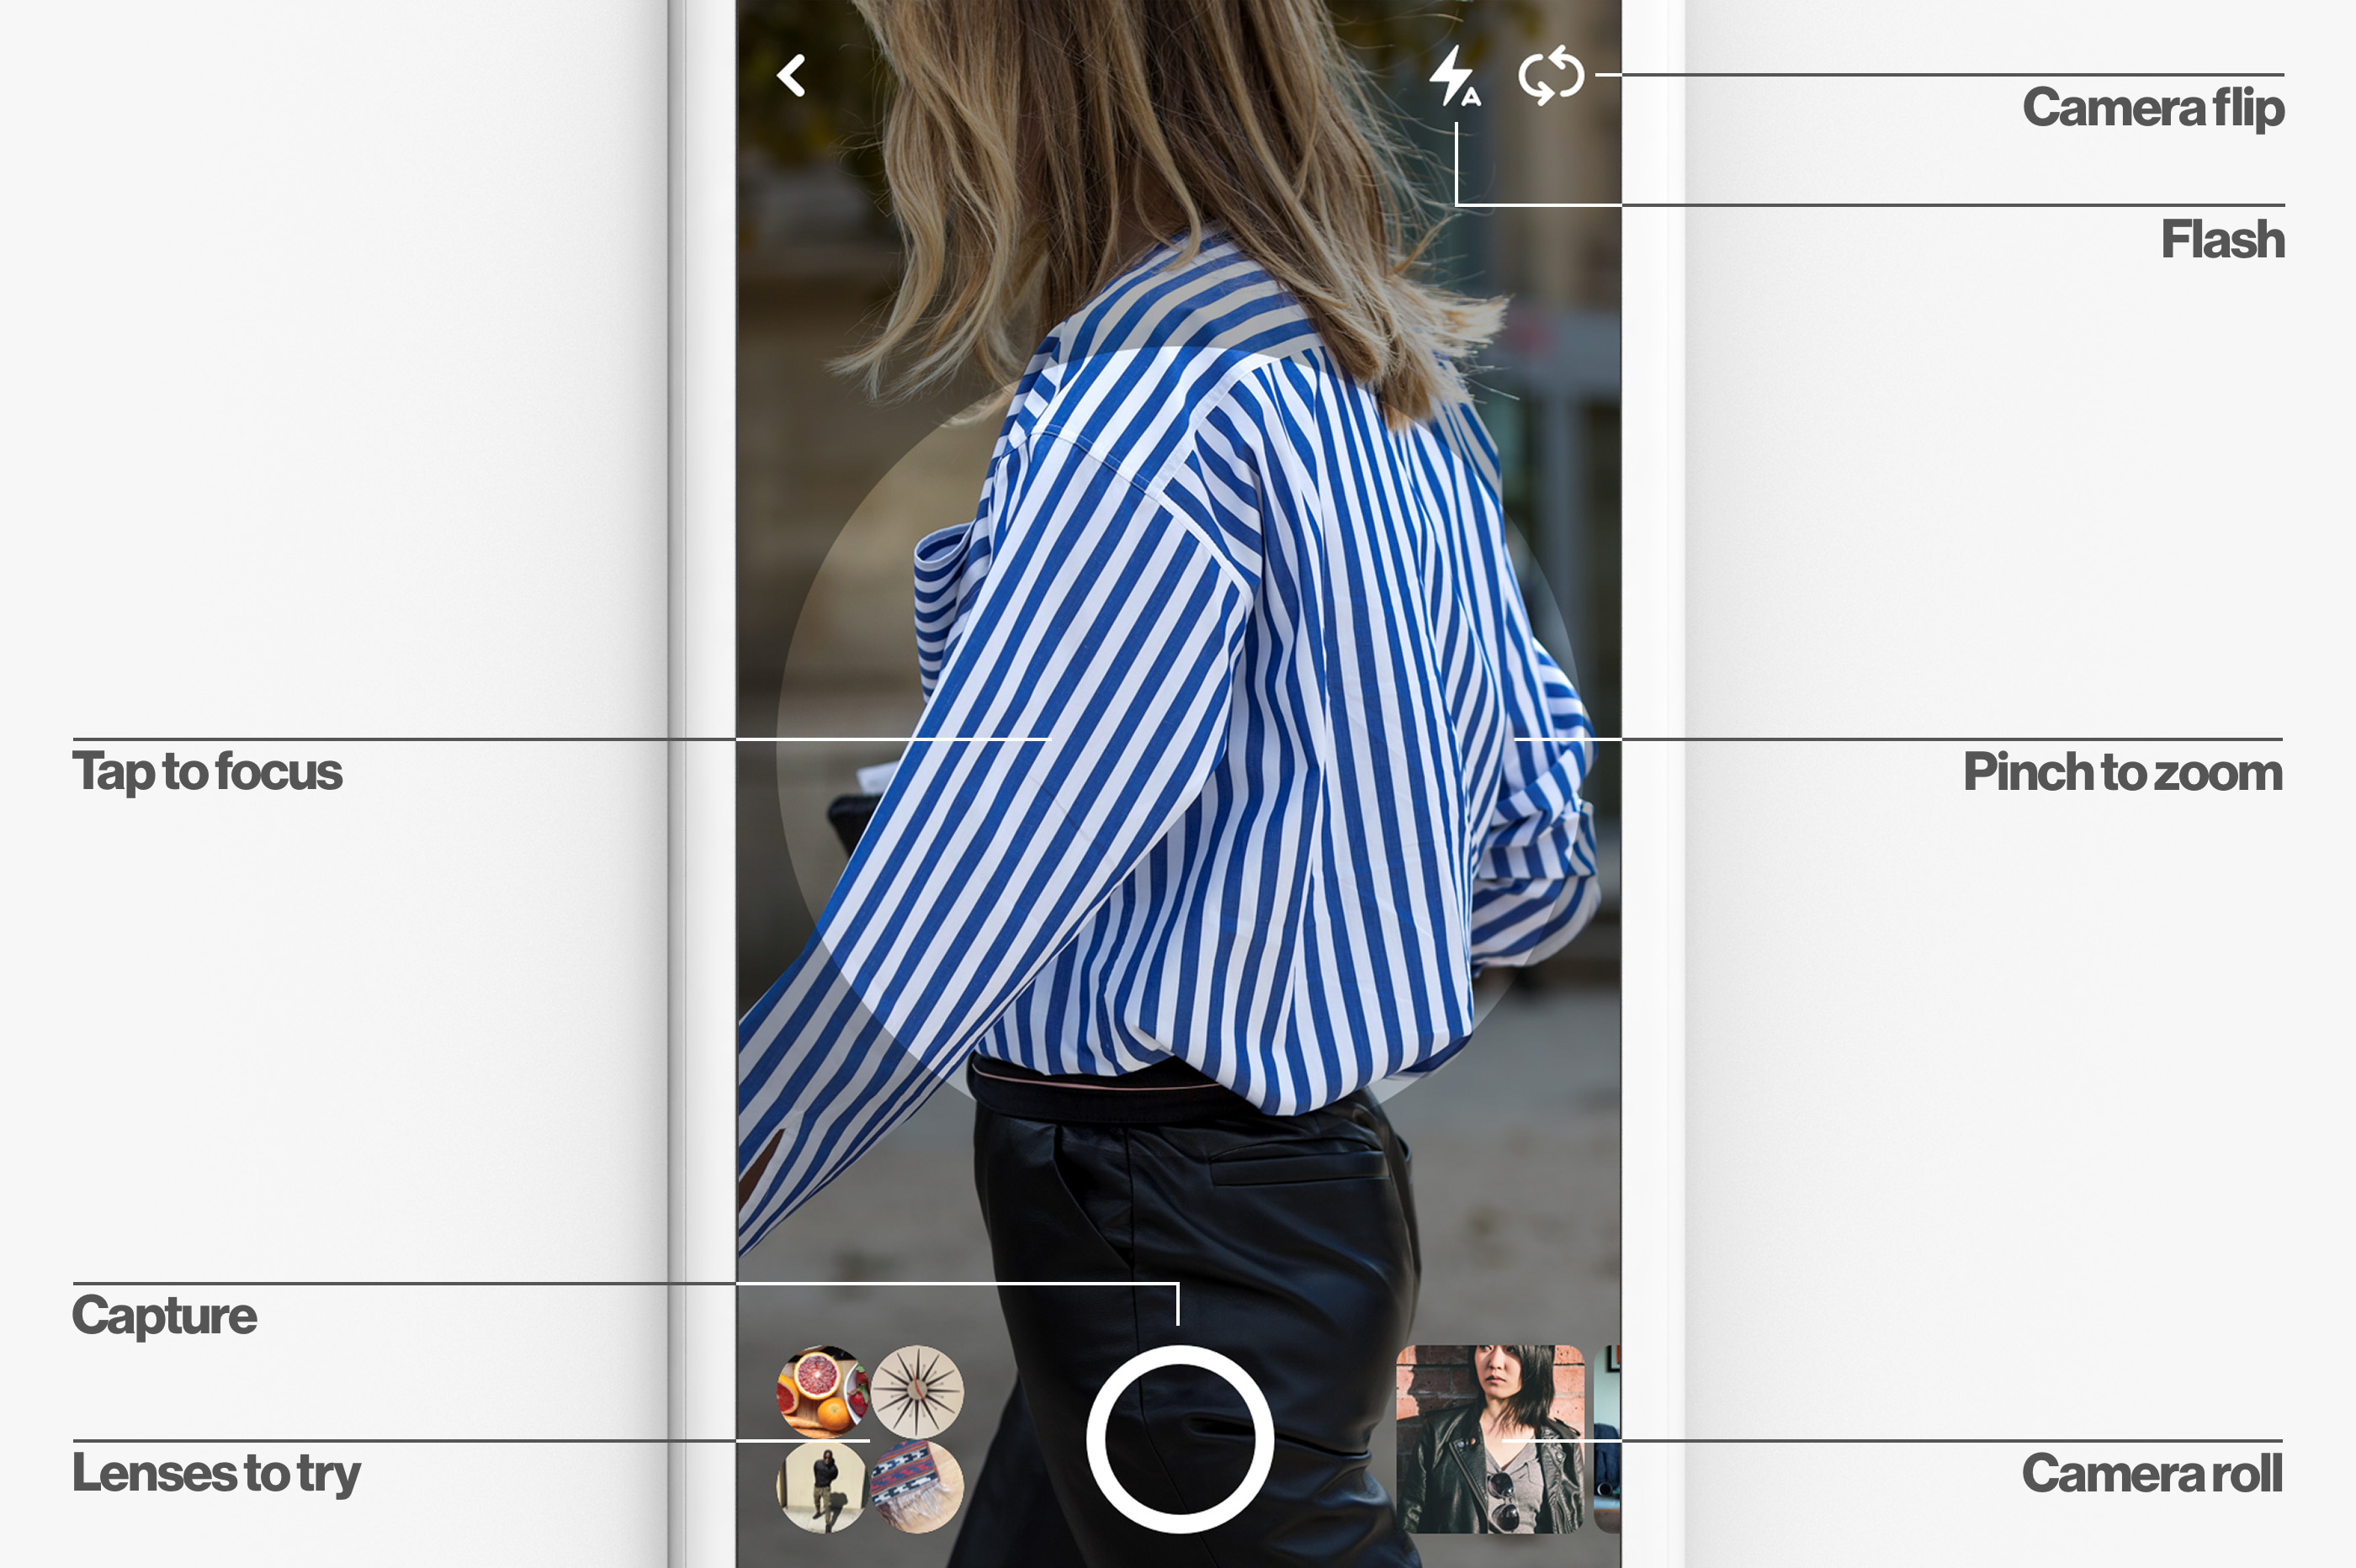 Pinterest Launches New Layout for Lens, Functional Enhancements | Social Media Today